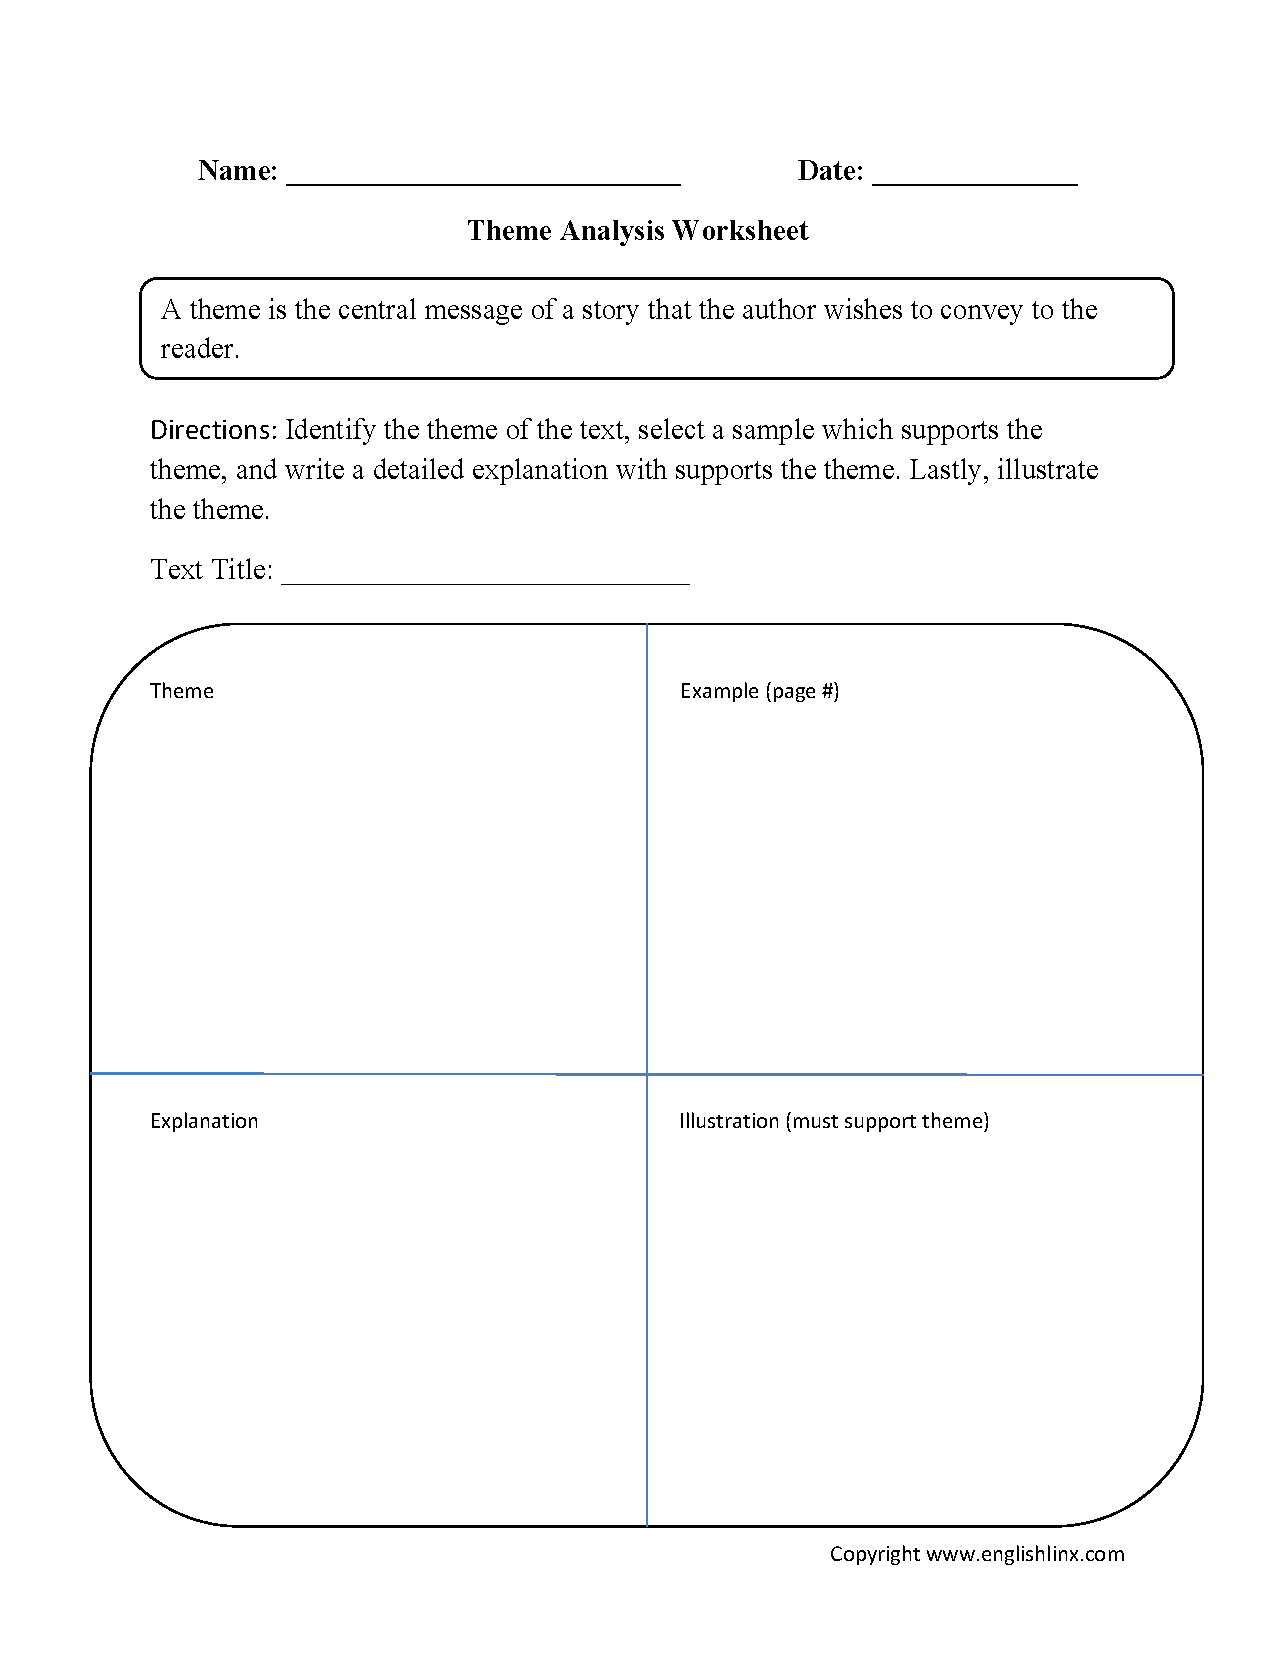 Themeysis Worksheet